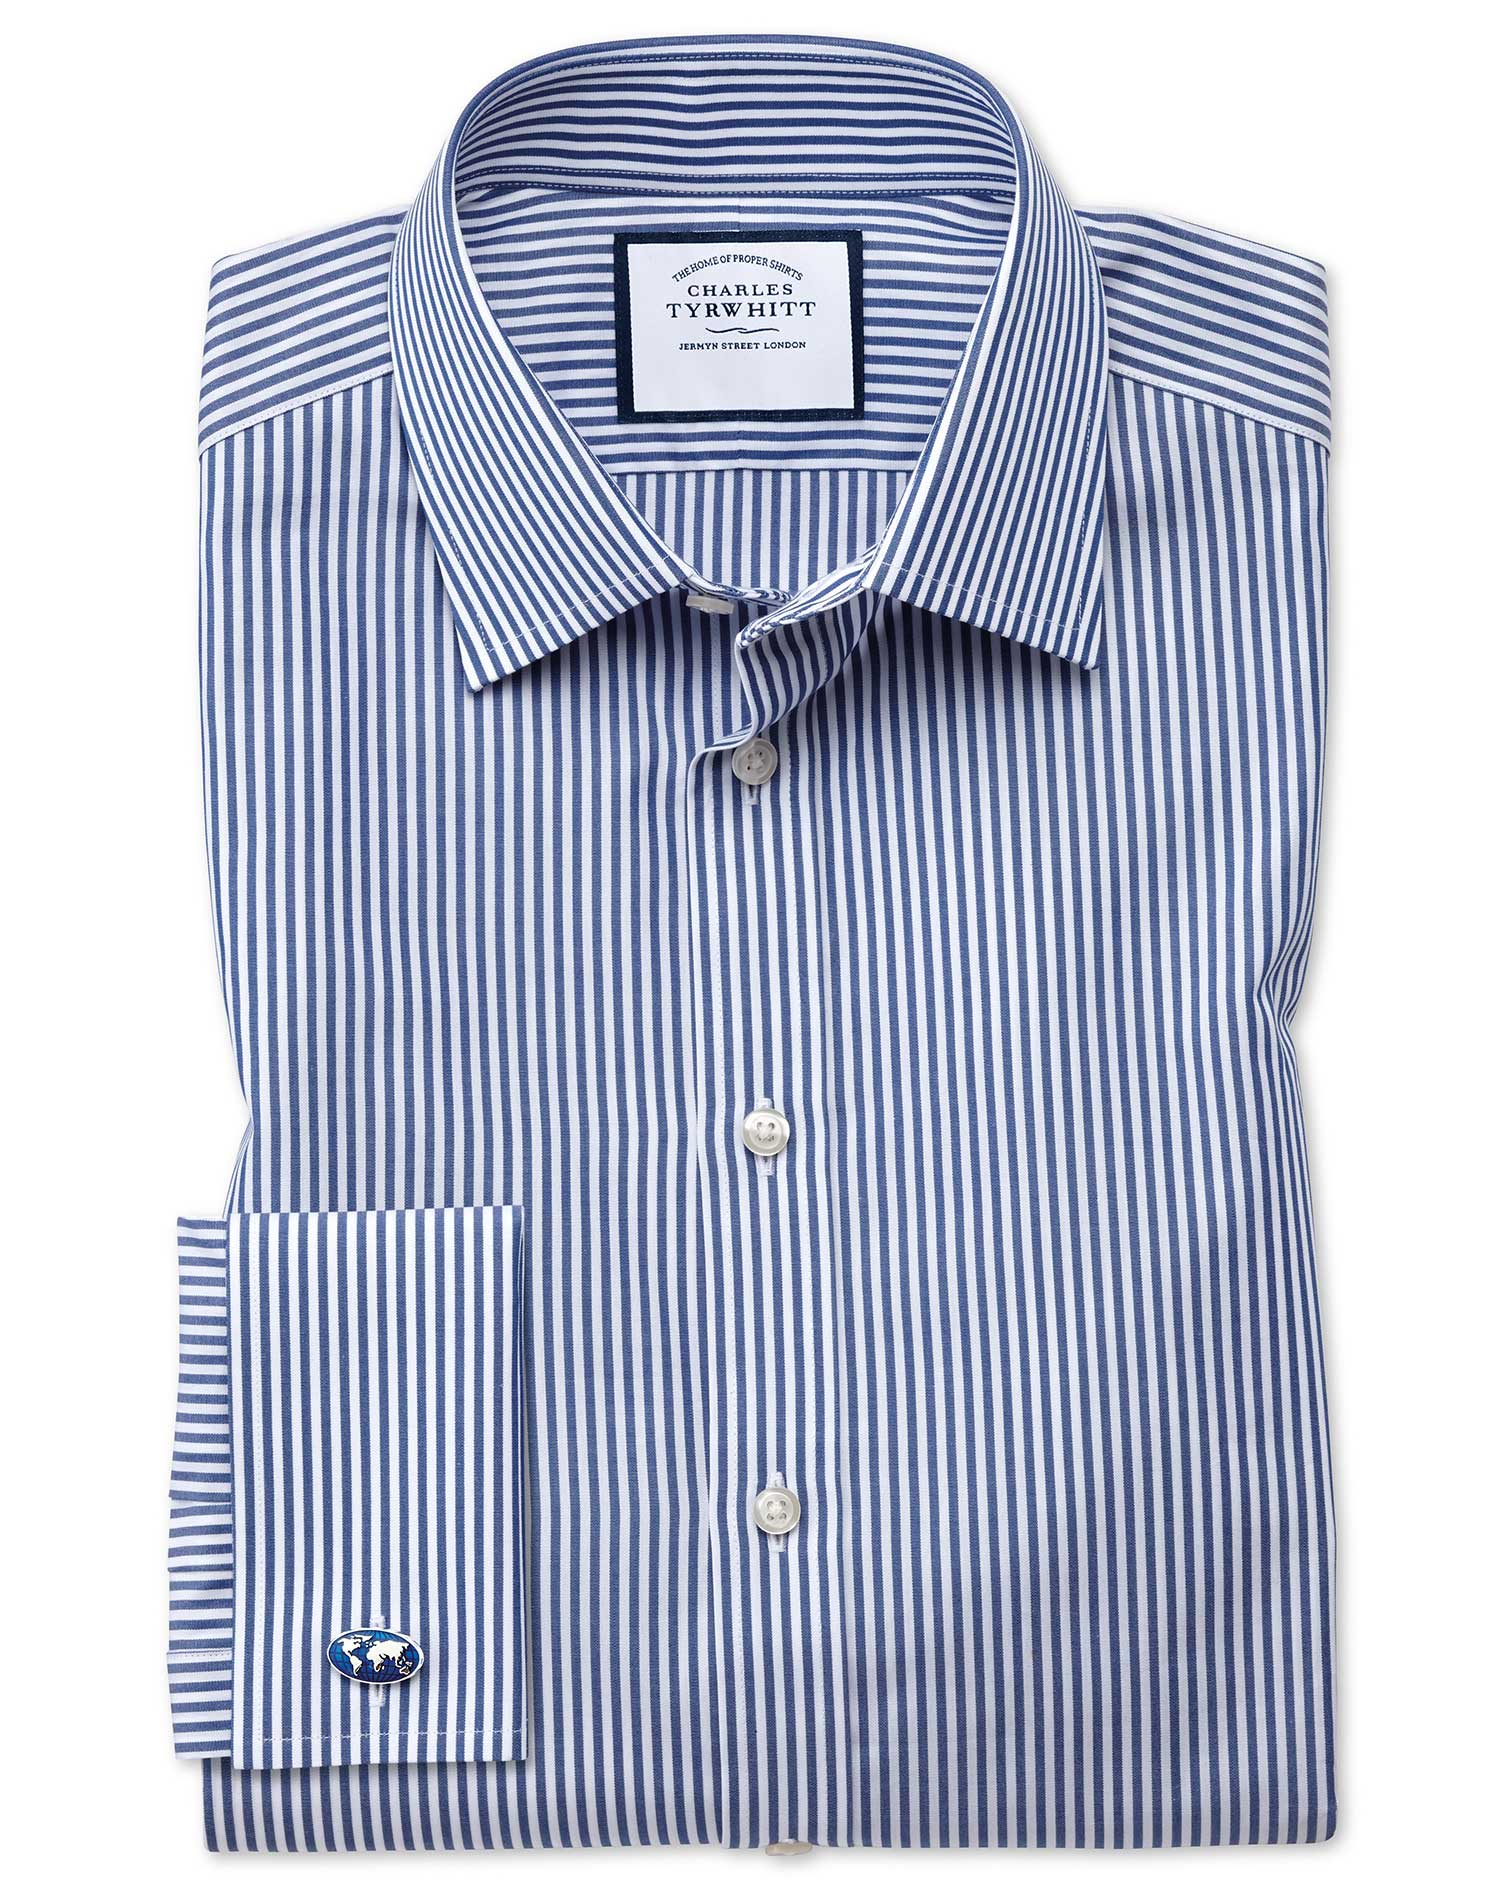 Extra Slim Fit Bengal Stripe Navy Blue Cotton Formal Shirt Double Cuff Size 16.5/35 by Charles Tyrwh